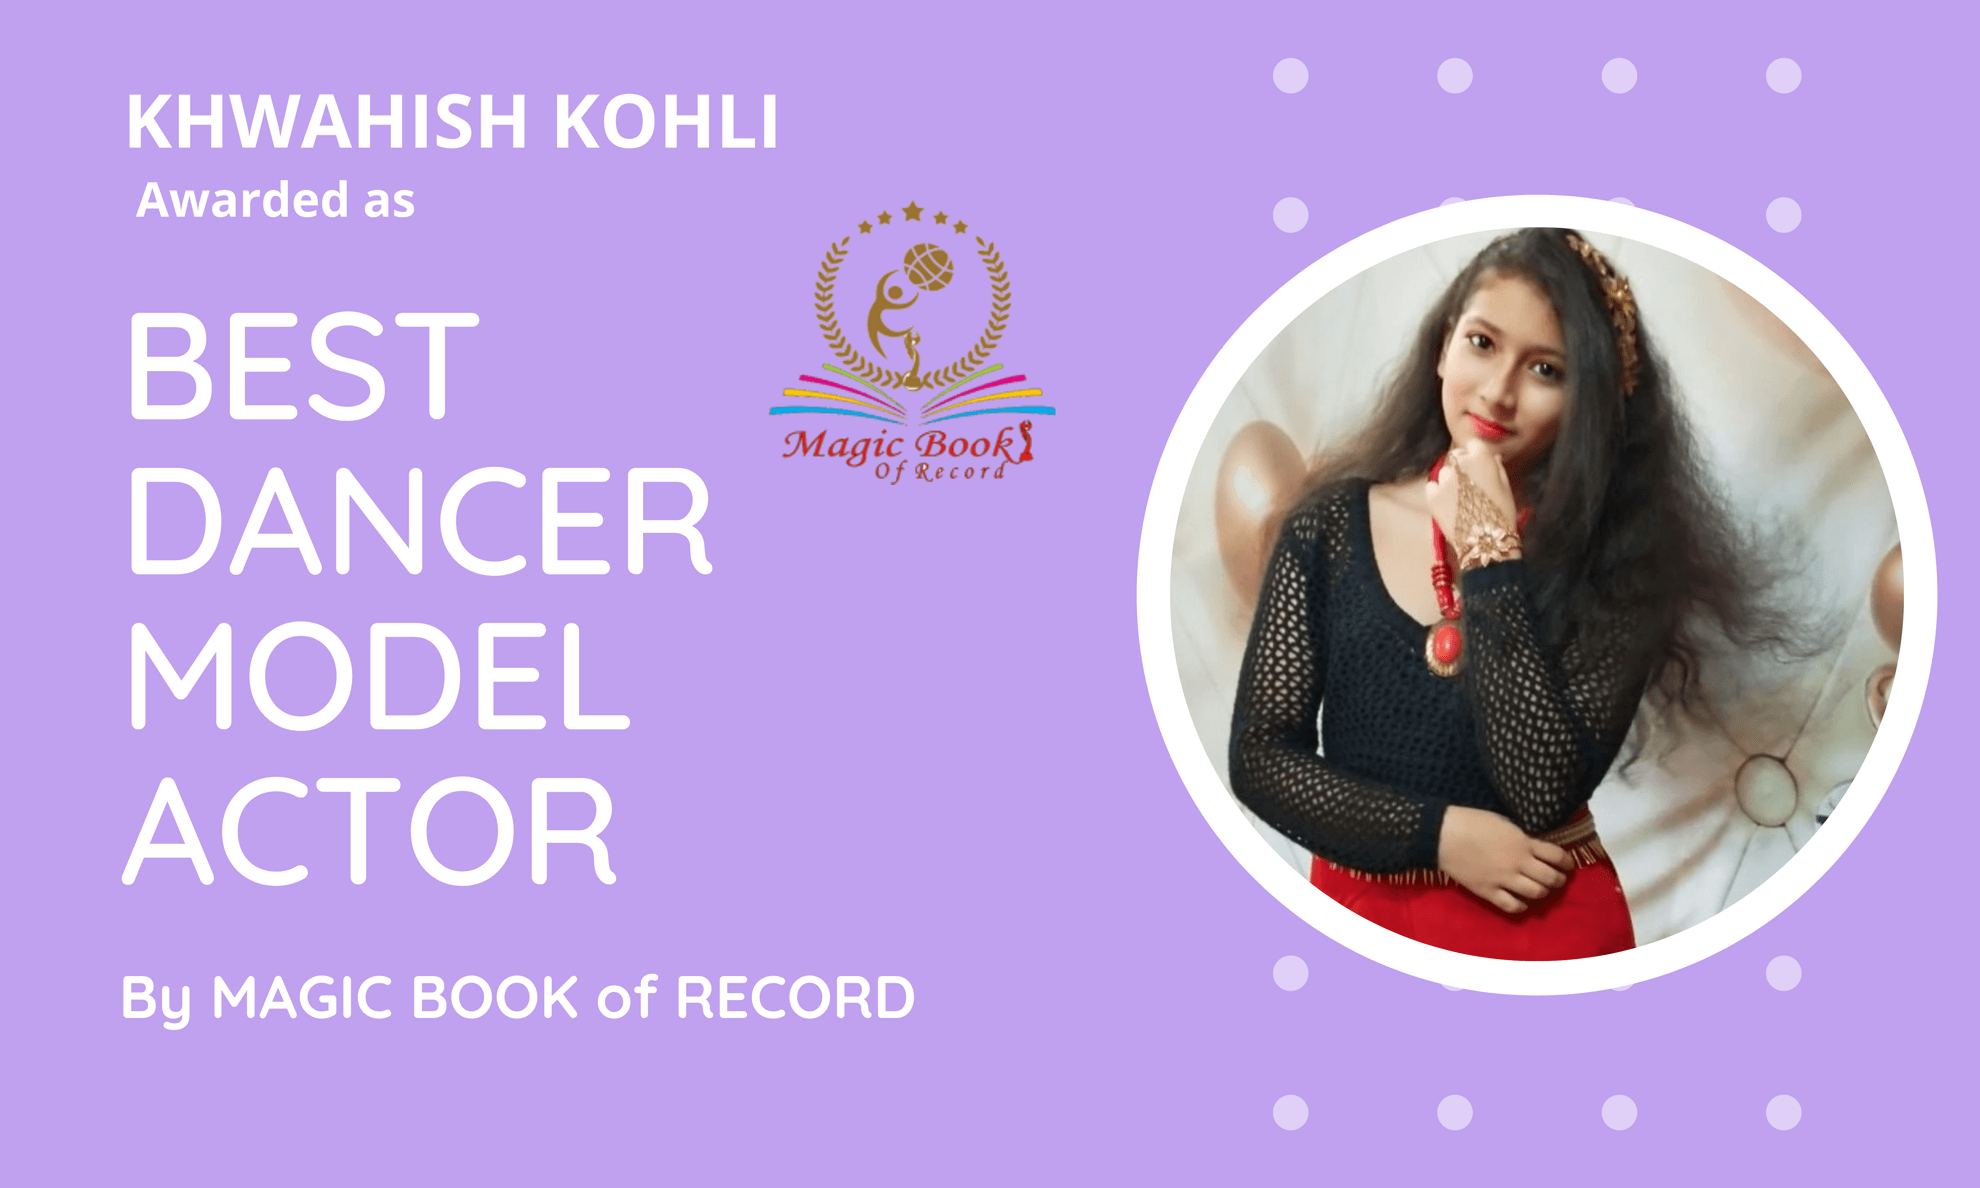 Khwahish-Kohli-Best-Dancer-Model-Actor-by-Magic-Book-of-Record